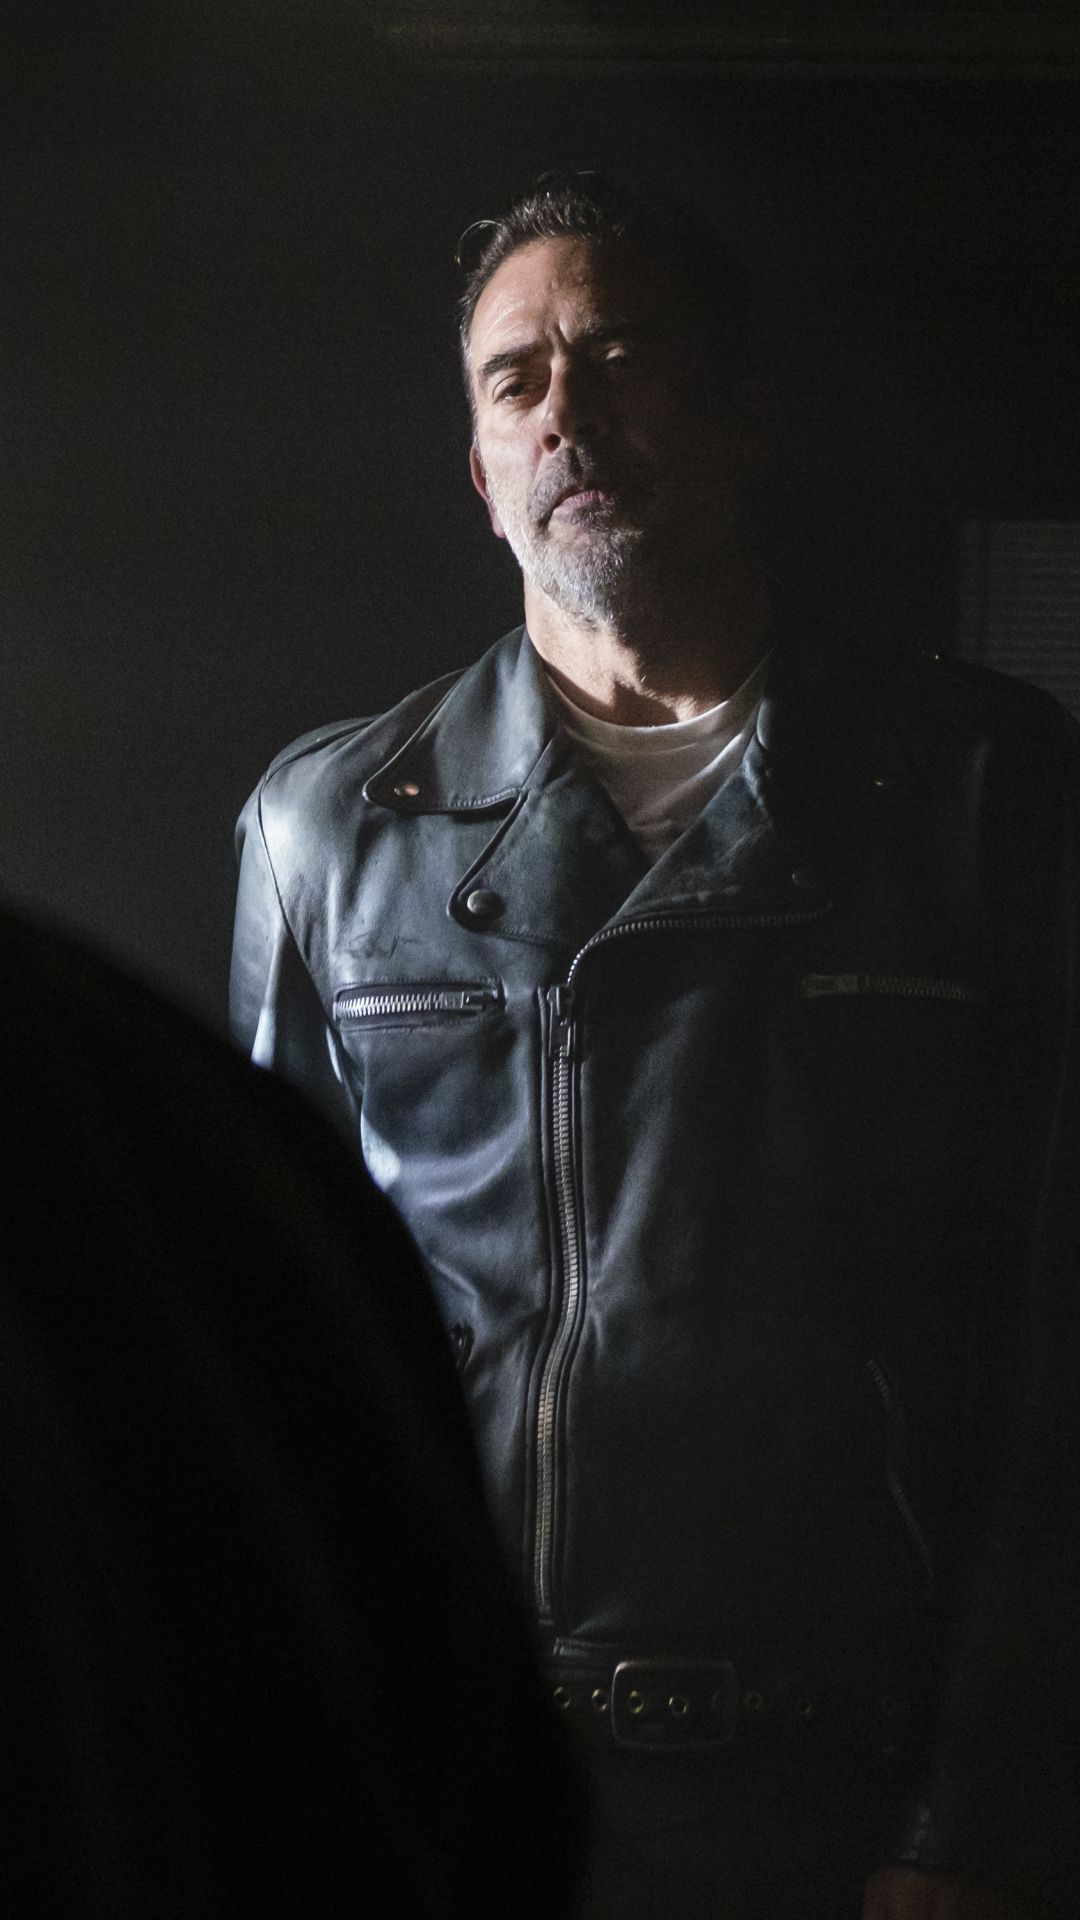 Negan The Walking Dead Background Picture Walking Dead Background Background Pictures Negan